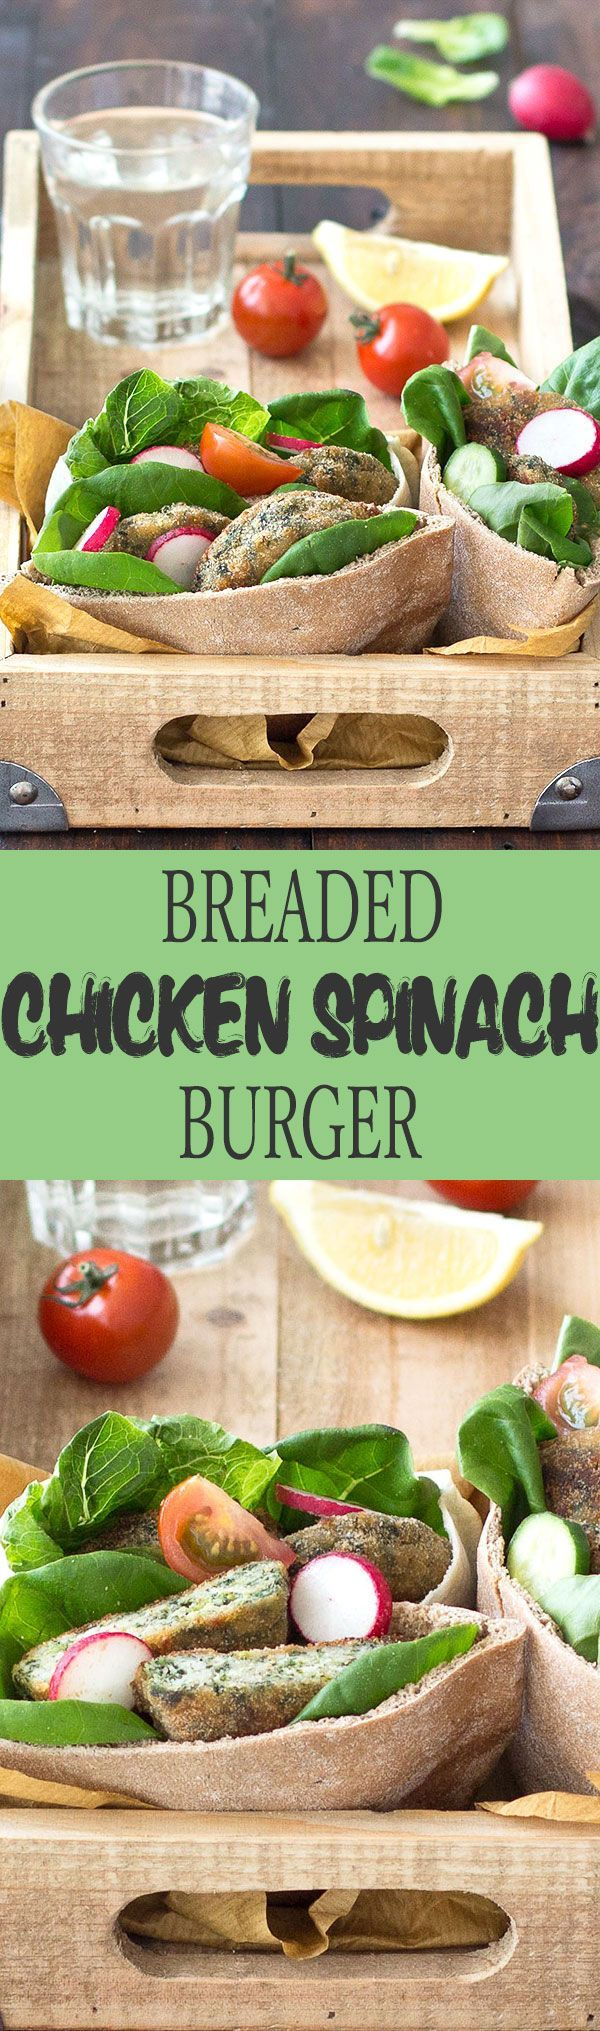 Breaded oven baked chicken spinach burgers- An easy, satisfying, 30 minutes weeknight meal everyone will love, kids and adults alike.